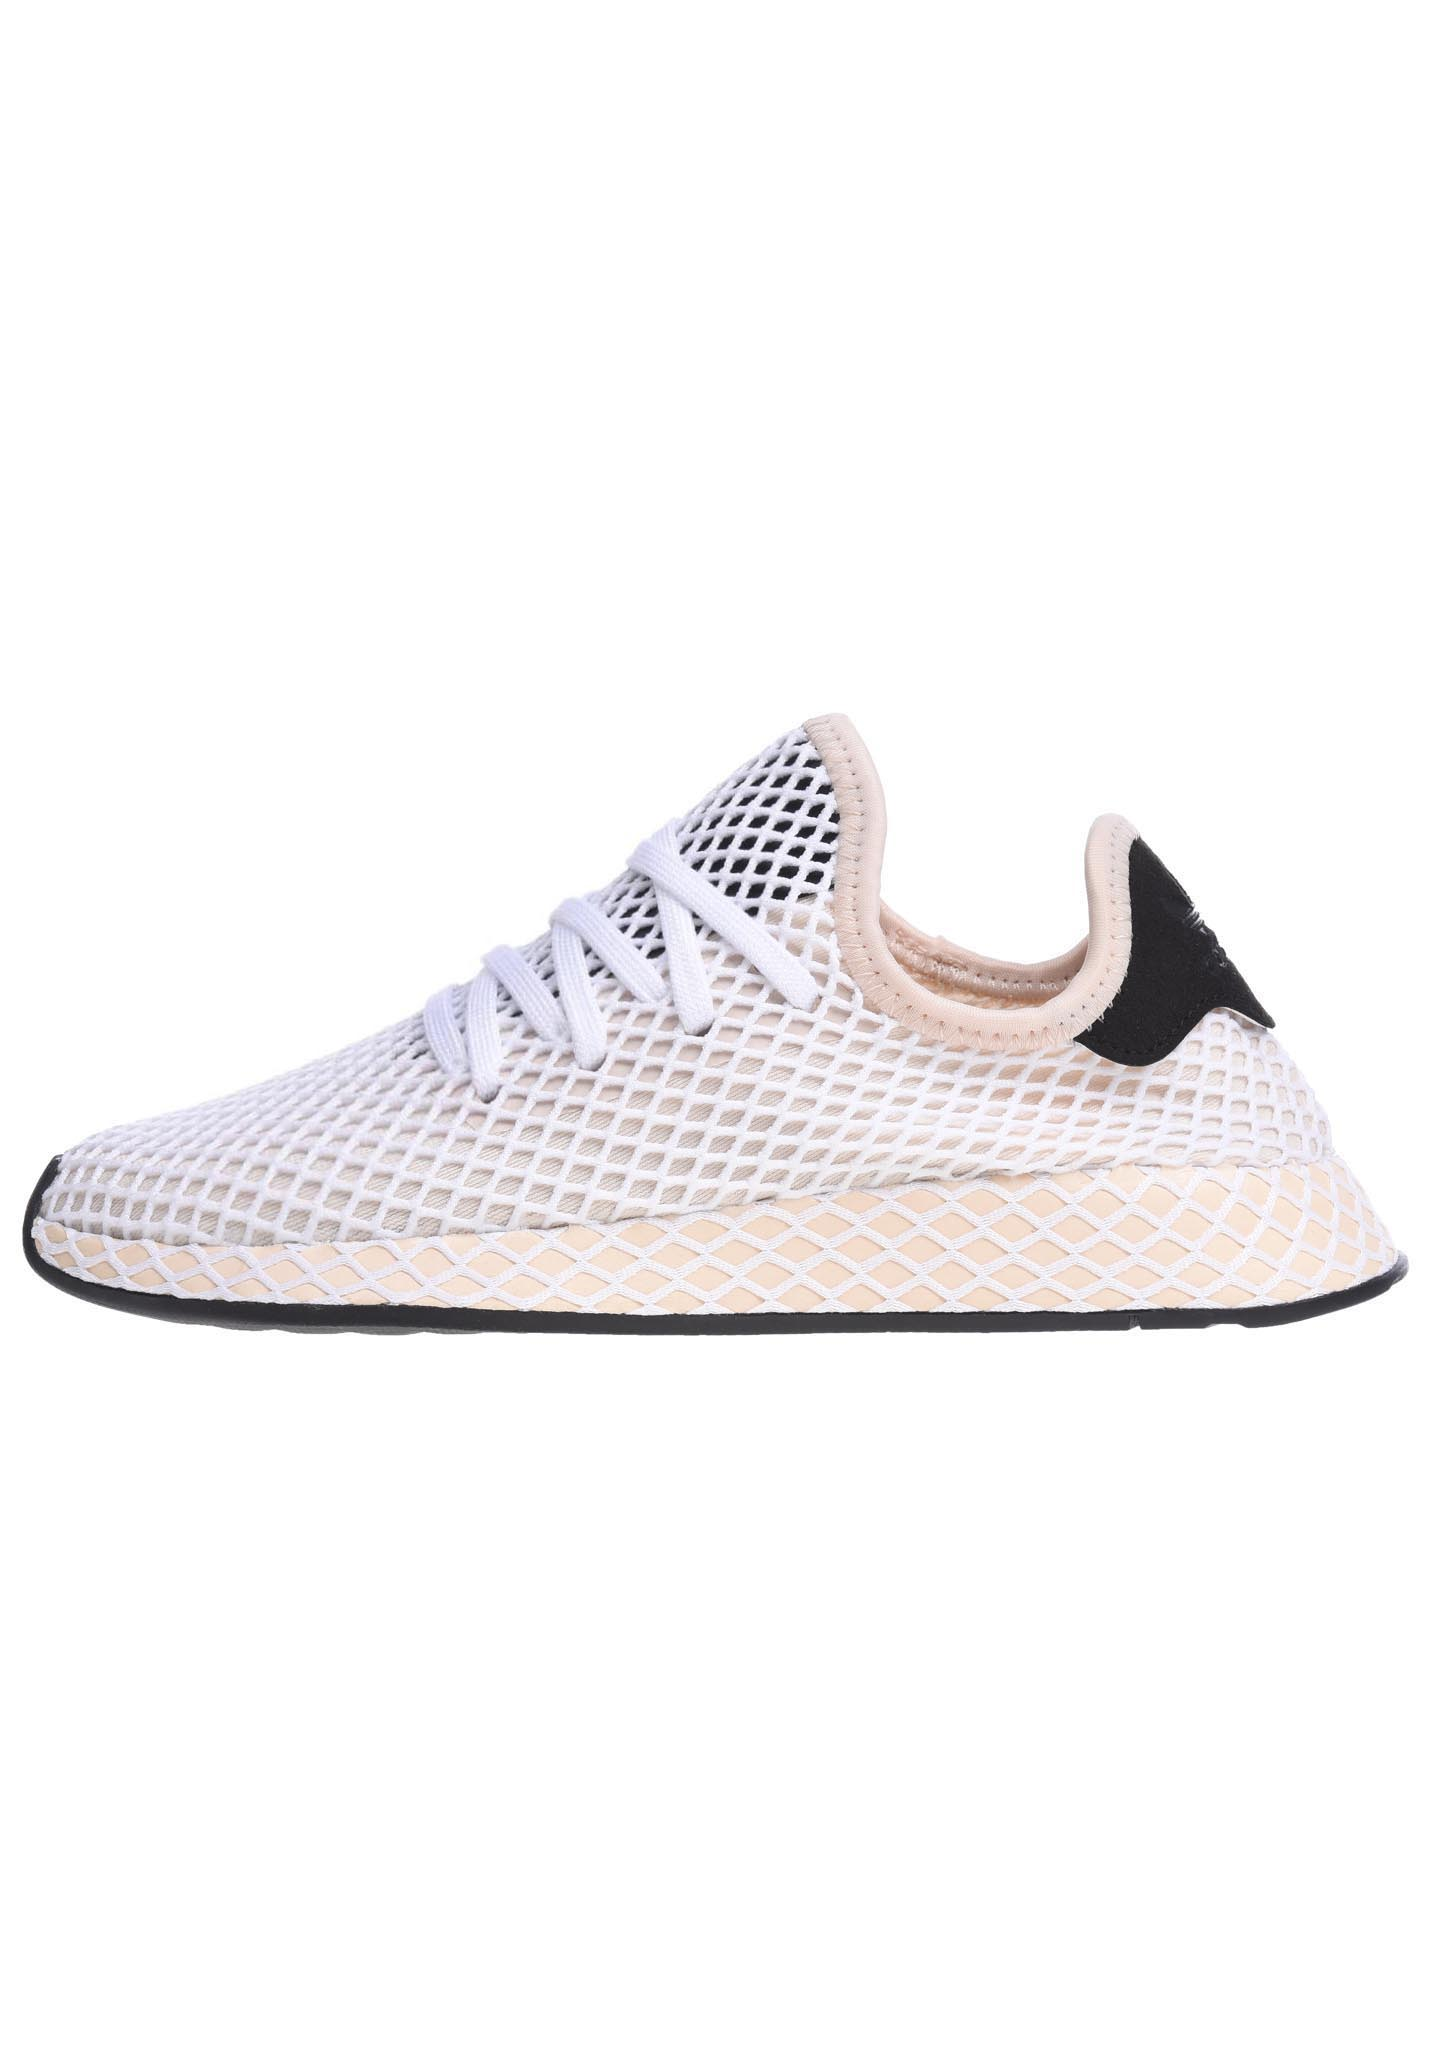 ADIDAS ORIGINALS Deerupt Runner - Baskets pour Femme - Blanc